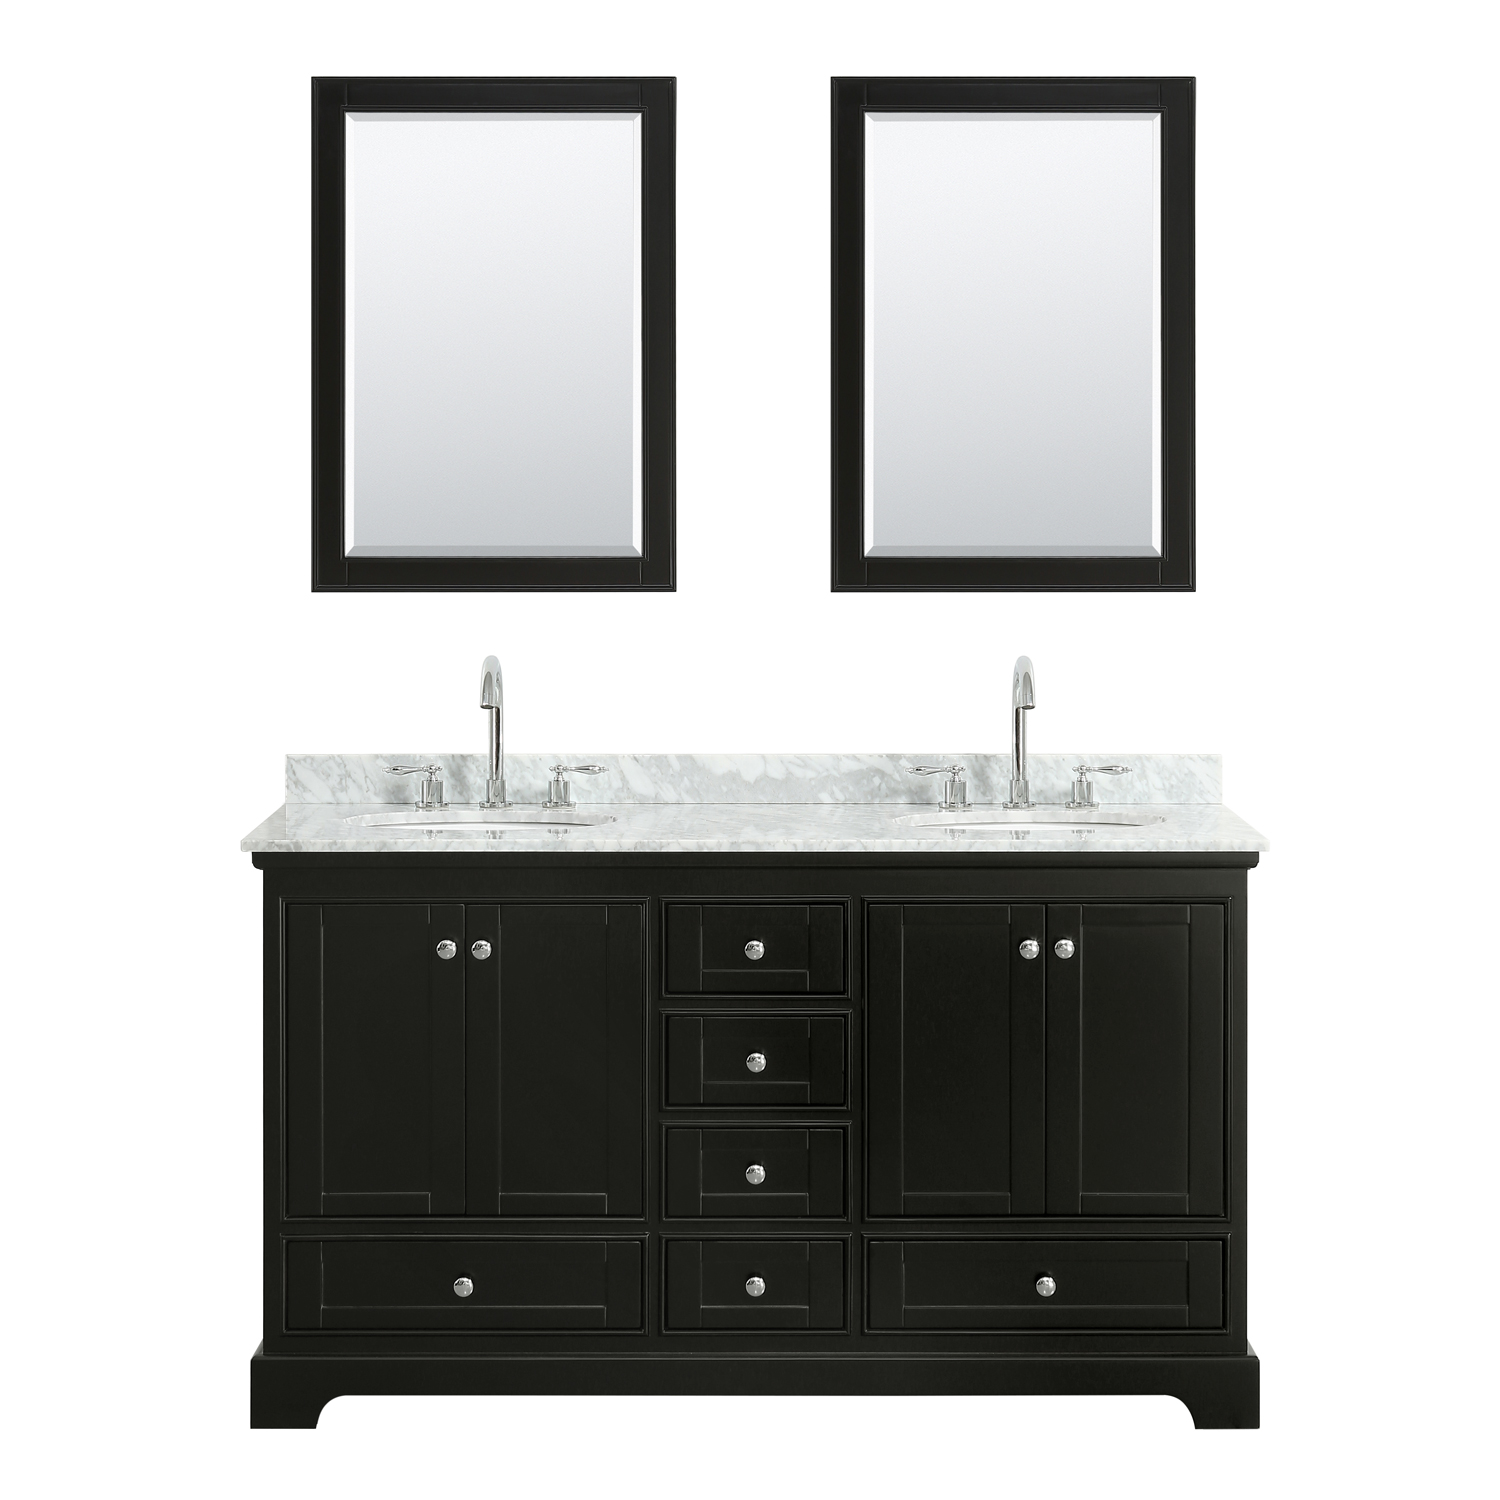 "60"" Double Bathroom Vanity in White Carrara Marble Countertop with Undermount Porcelain Sinks, Medicine Cabinet, Mirror and Color Options"